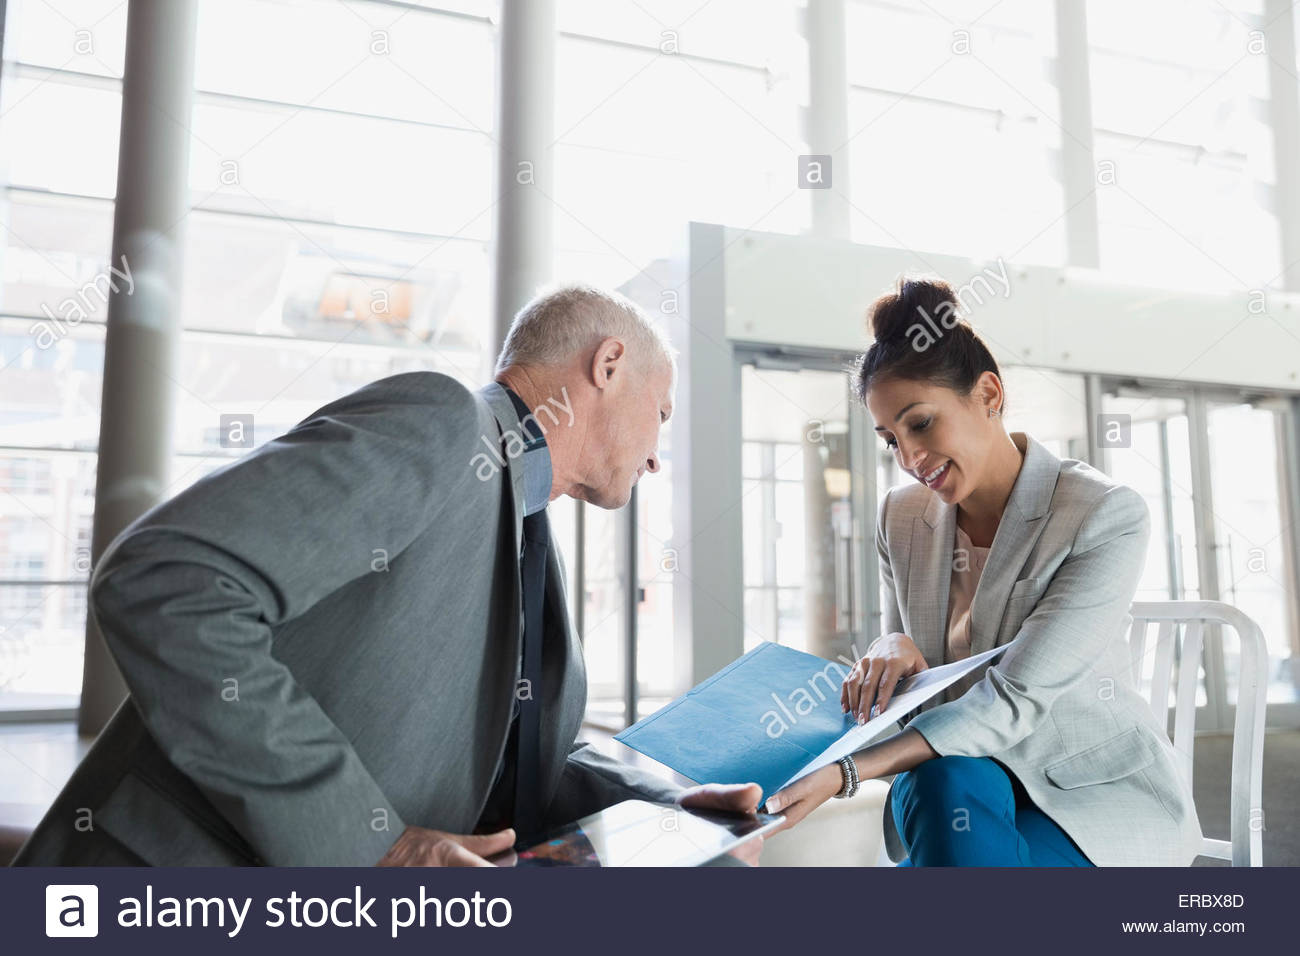 Business people reviewing paperwork in lobby - Stock Image